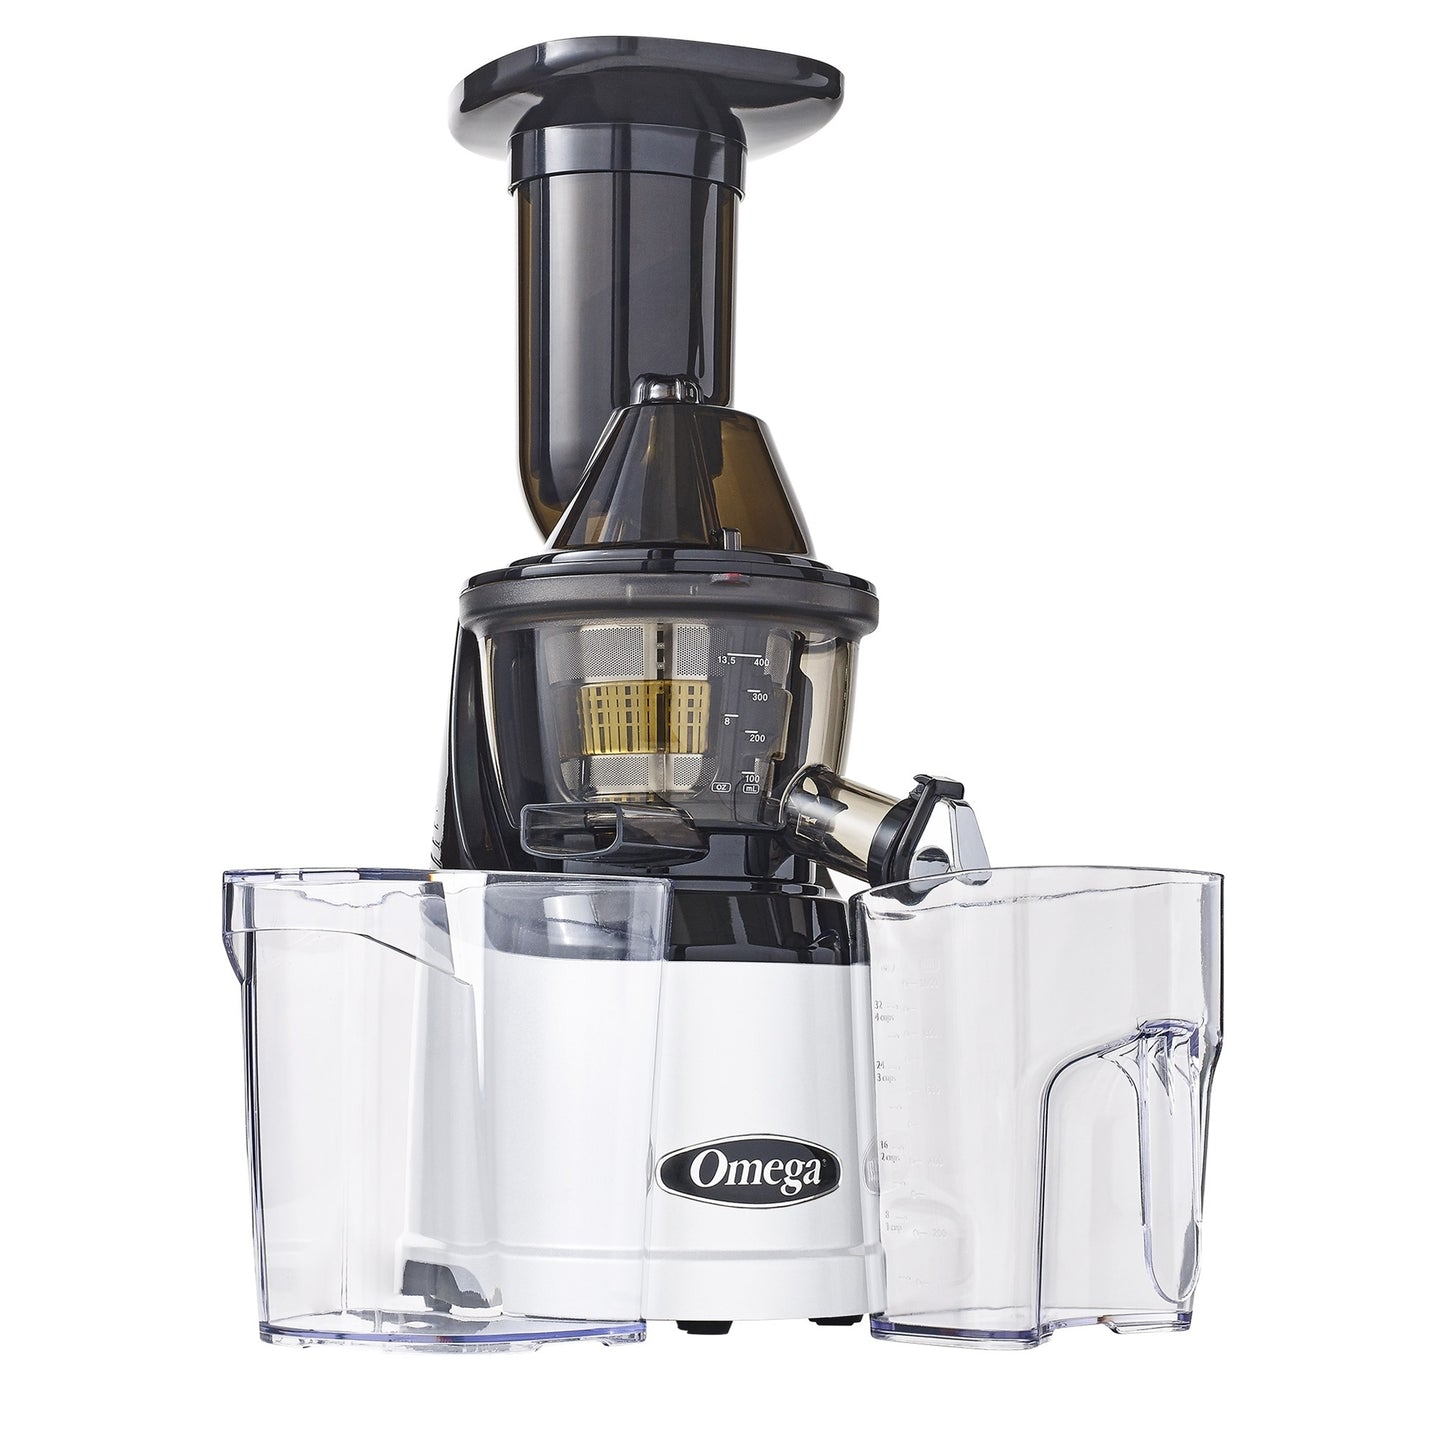 Omega Juicer MMV702 Megamouth vertical cold press slow juicer